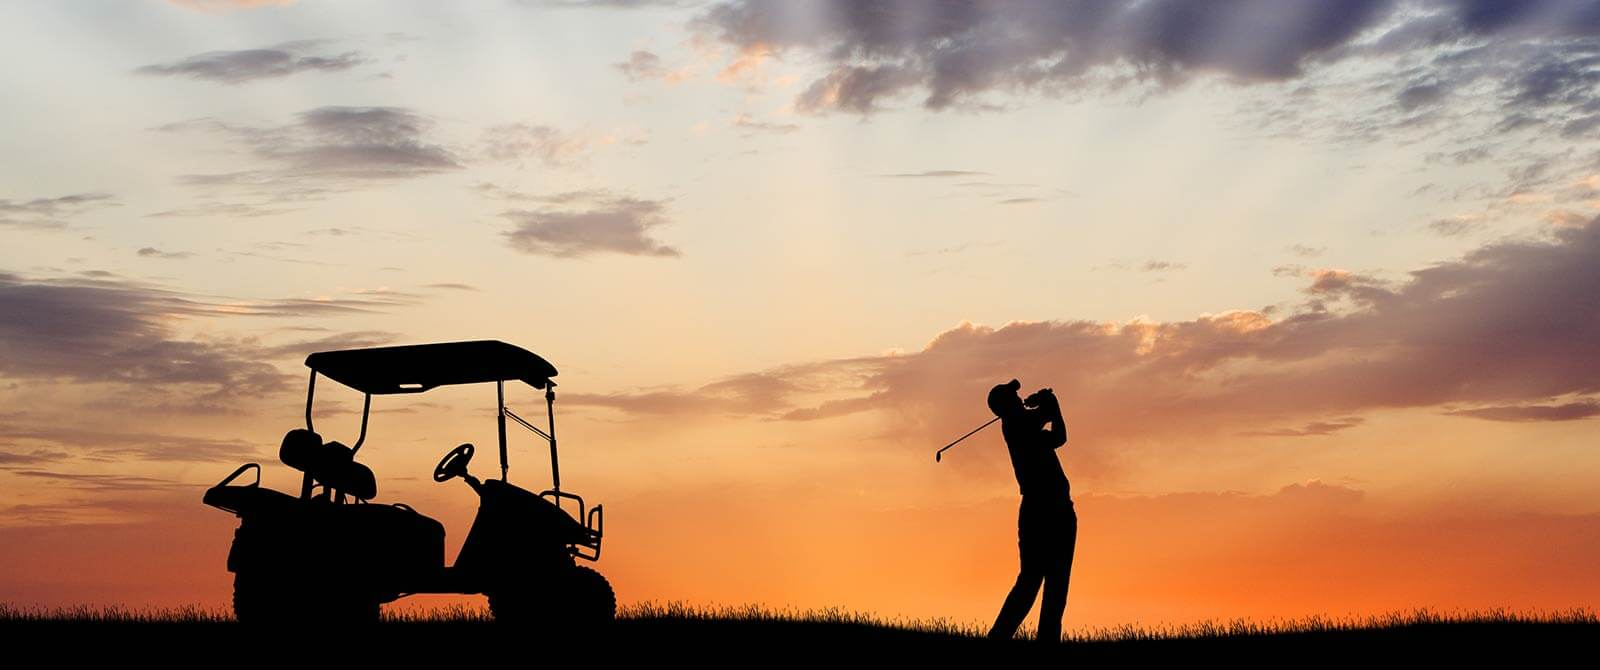 Silhouette of a man playing golf next to his lithium-iron powered golf buggy